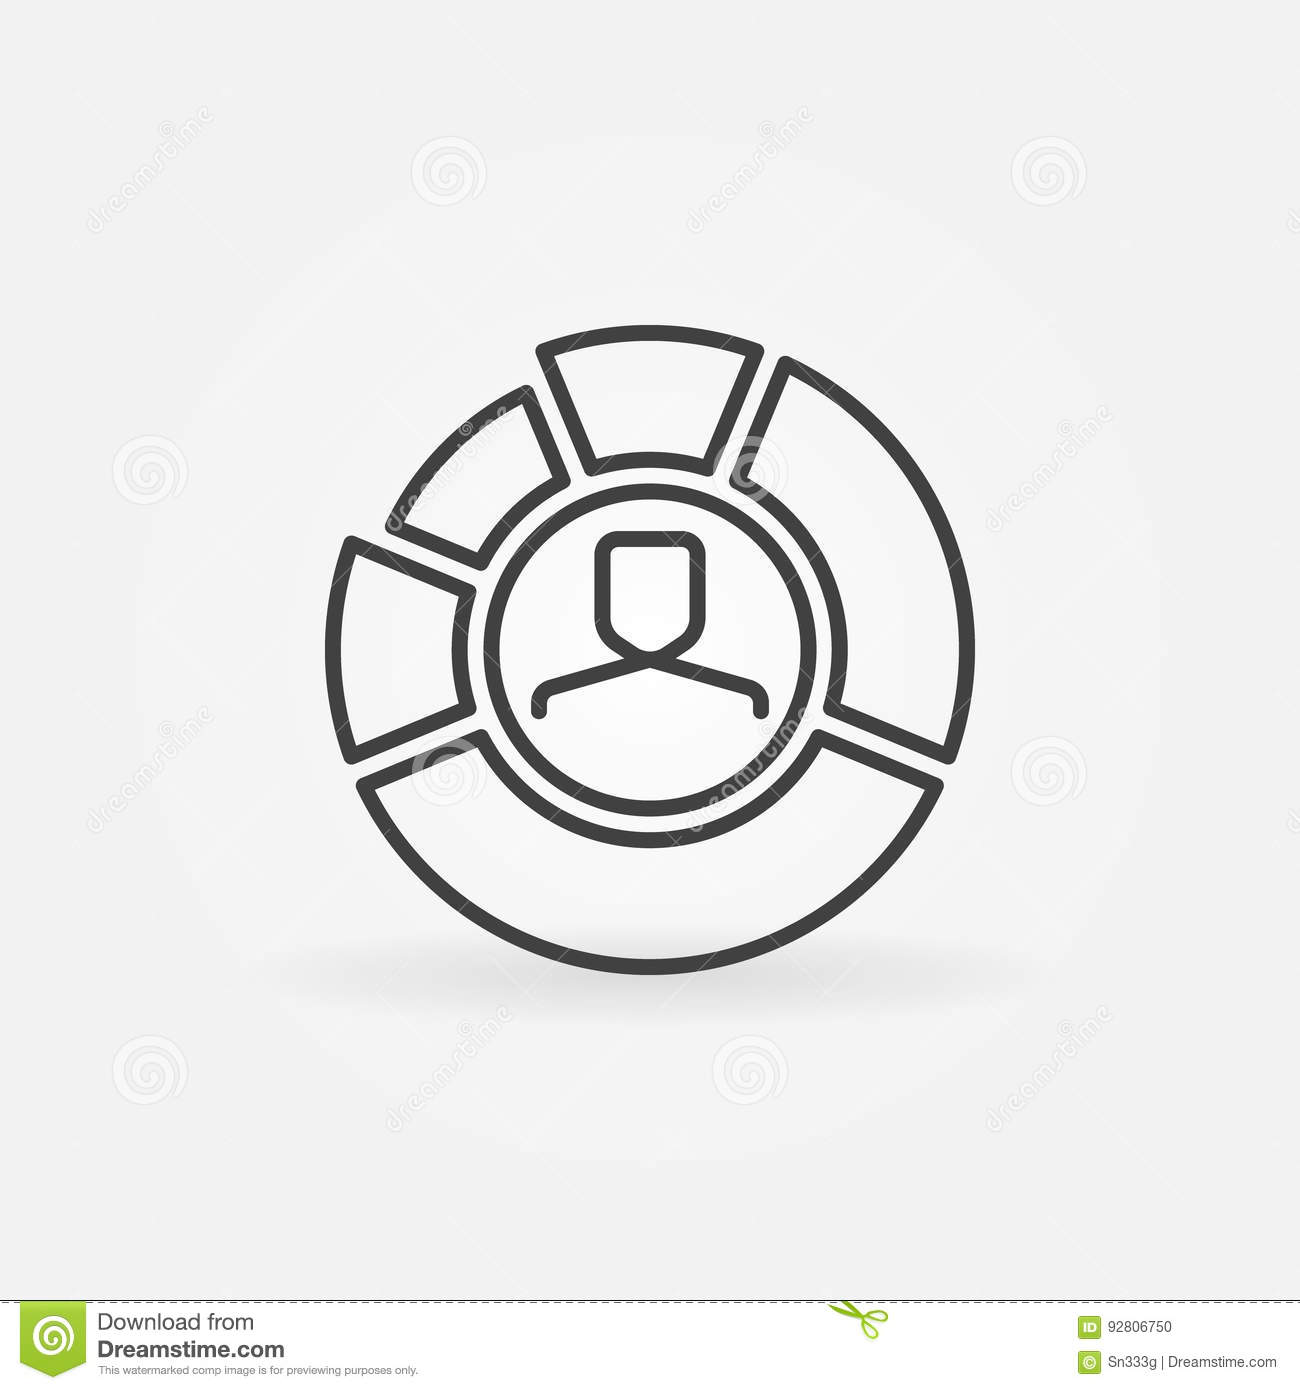 hight resolution of pie chart with face inside outline icon